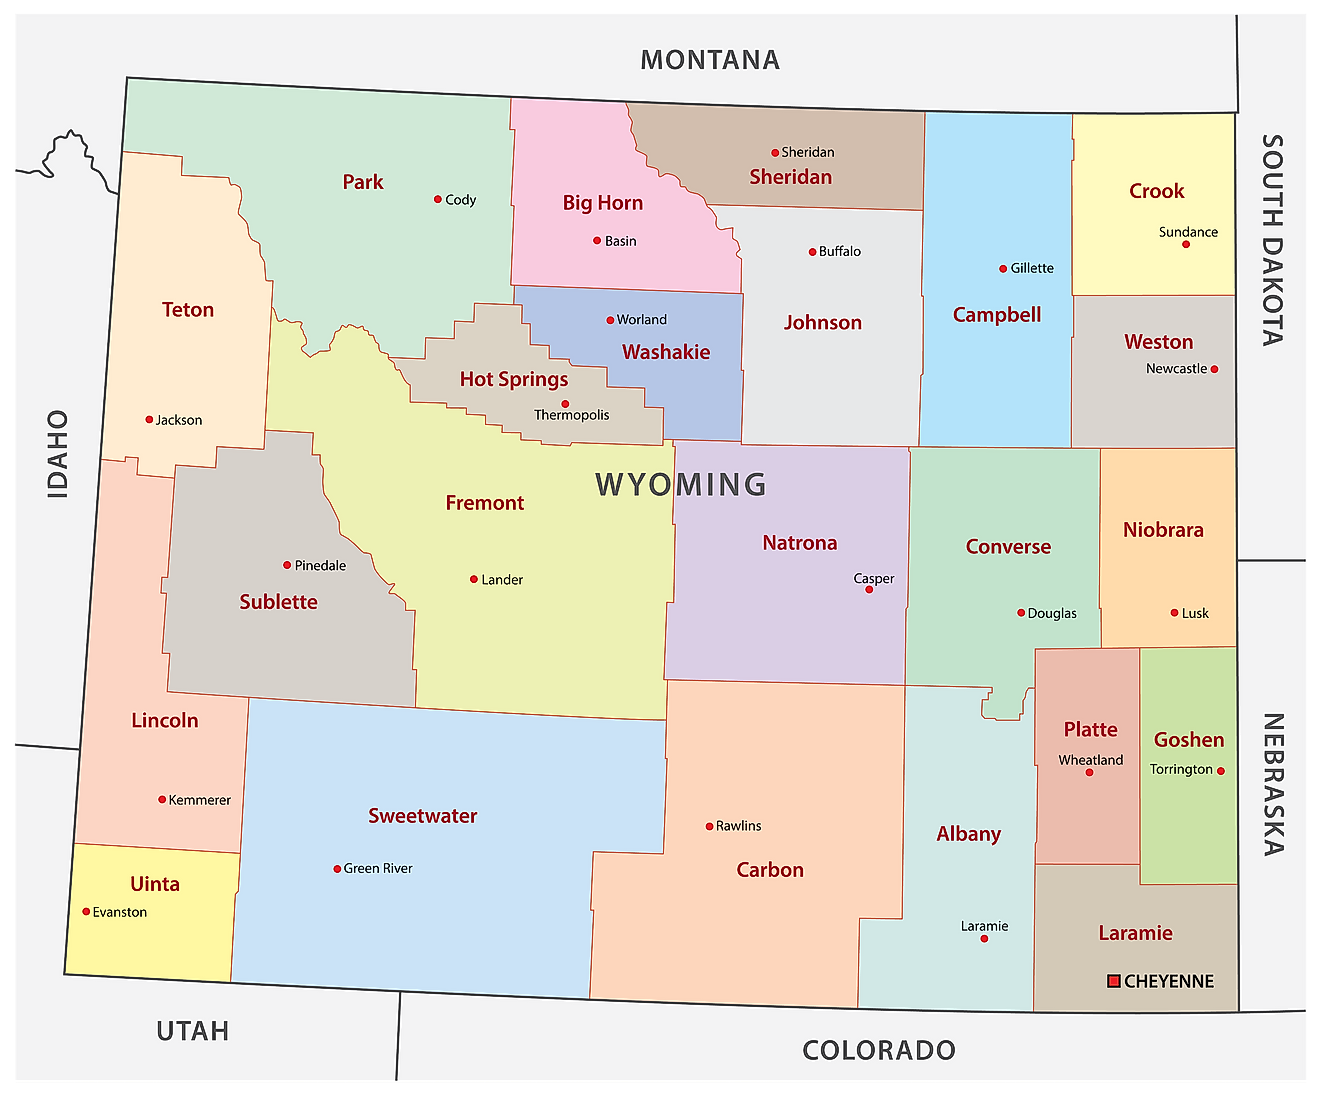 Administrative Map of Wyoming showing its 23 counties and the capital city - Cheyenne